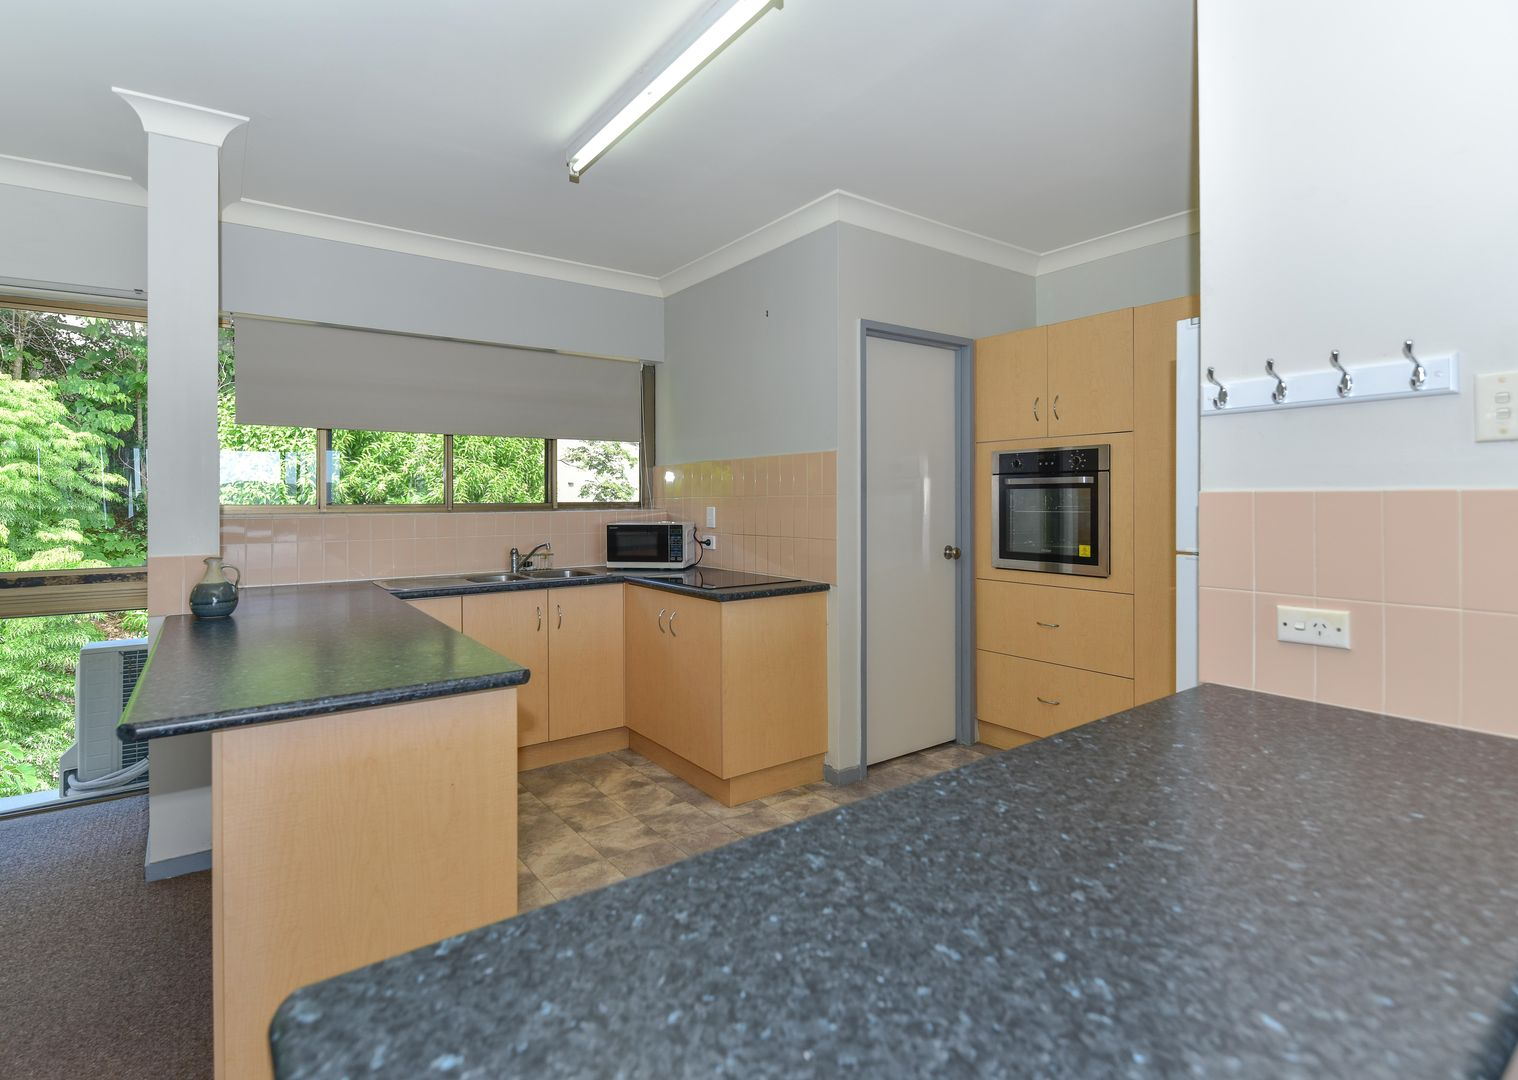 26/2 Eshelby Drive, Cannonvale QLD 4802, Image 2